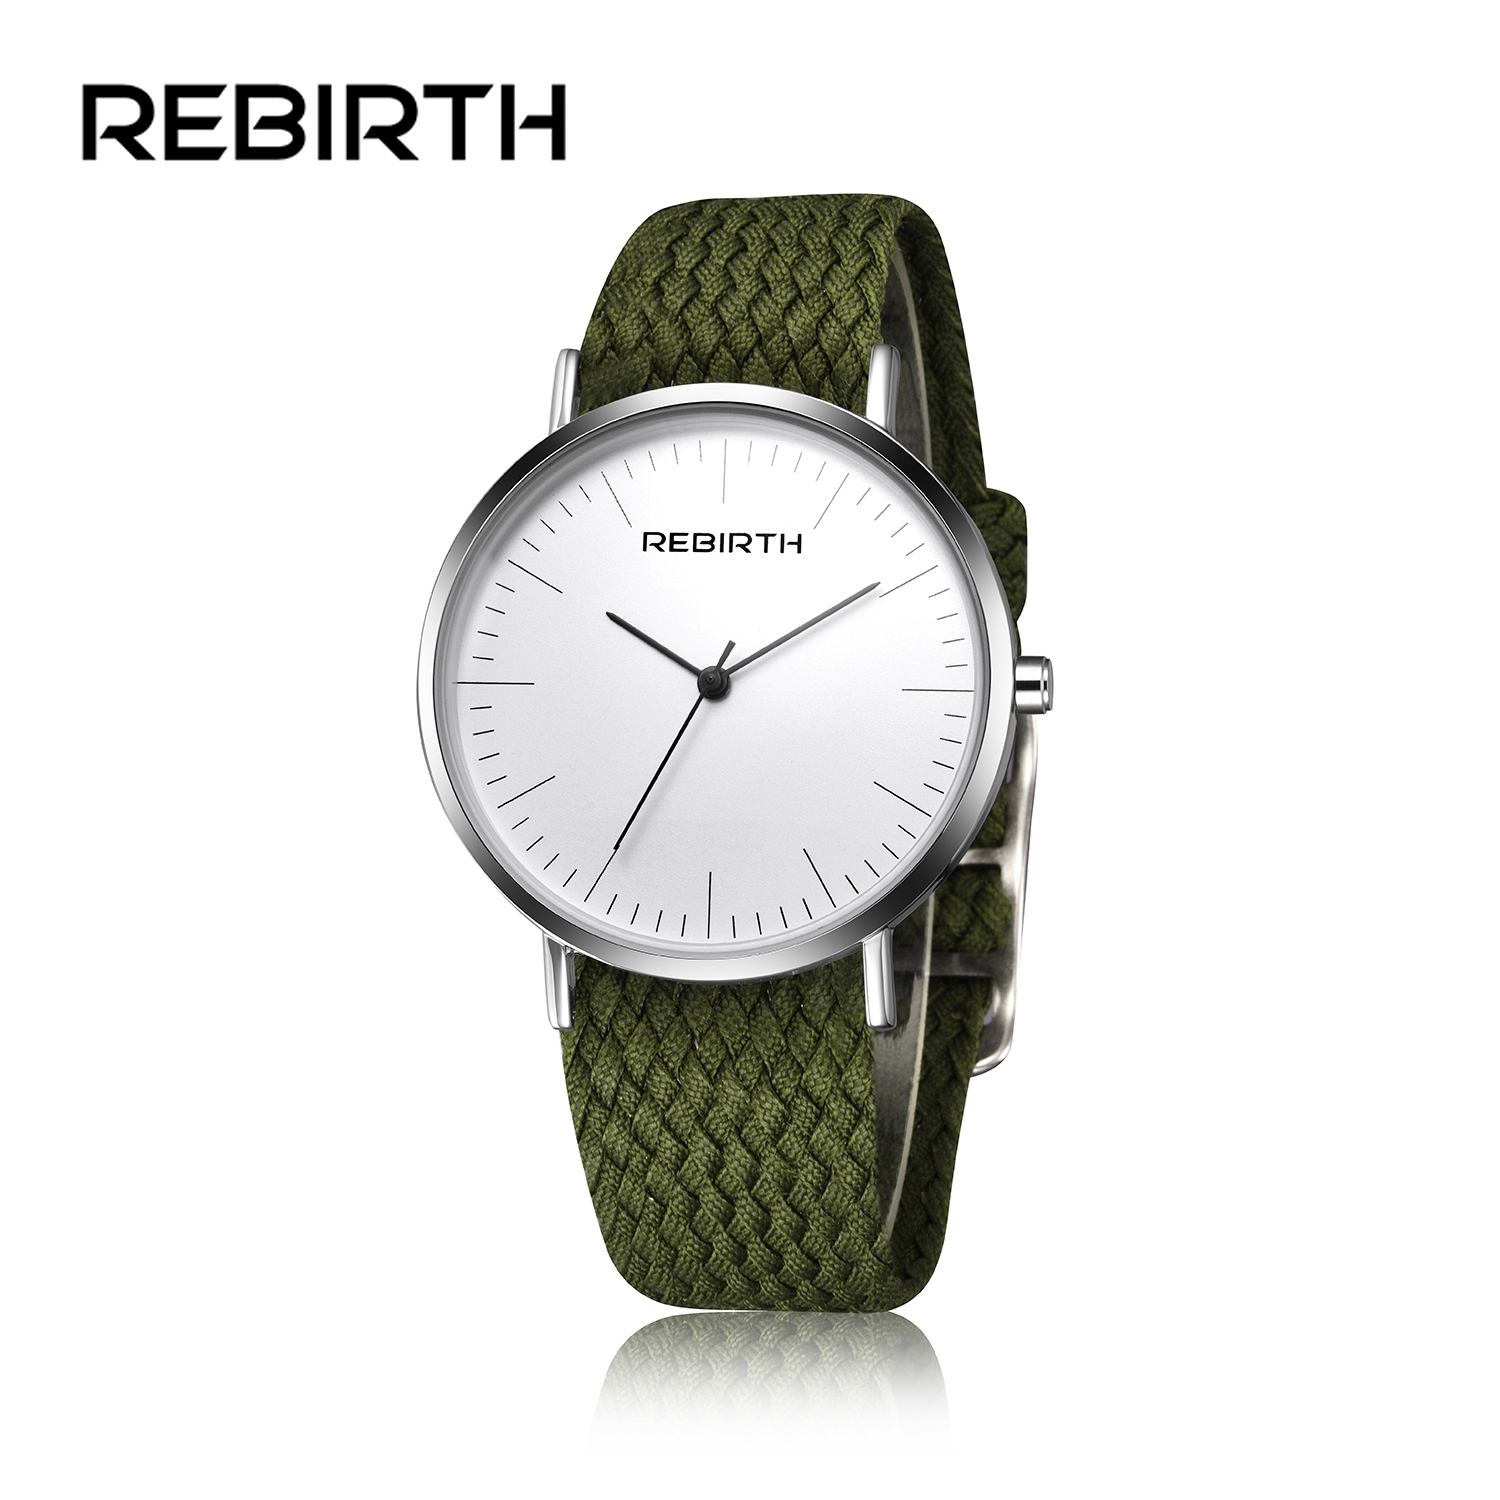 2018 New REBIRTH Watches Women Men Top Brand Luxury Unisex Nylon Strap Wristwatches Quartz Sports Watches Relogio Masculino